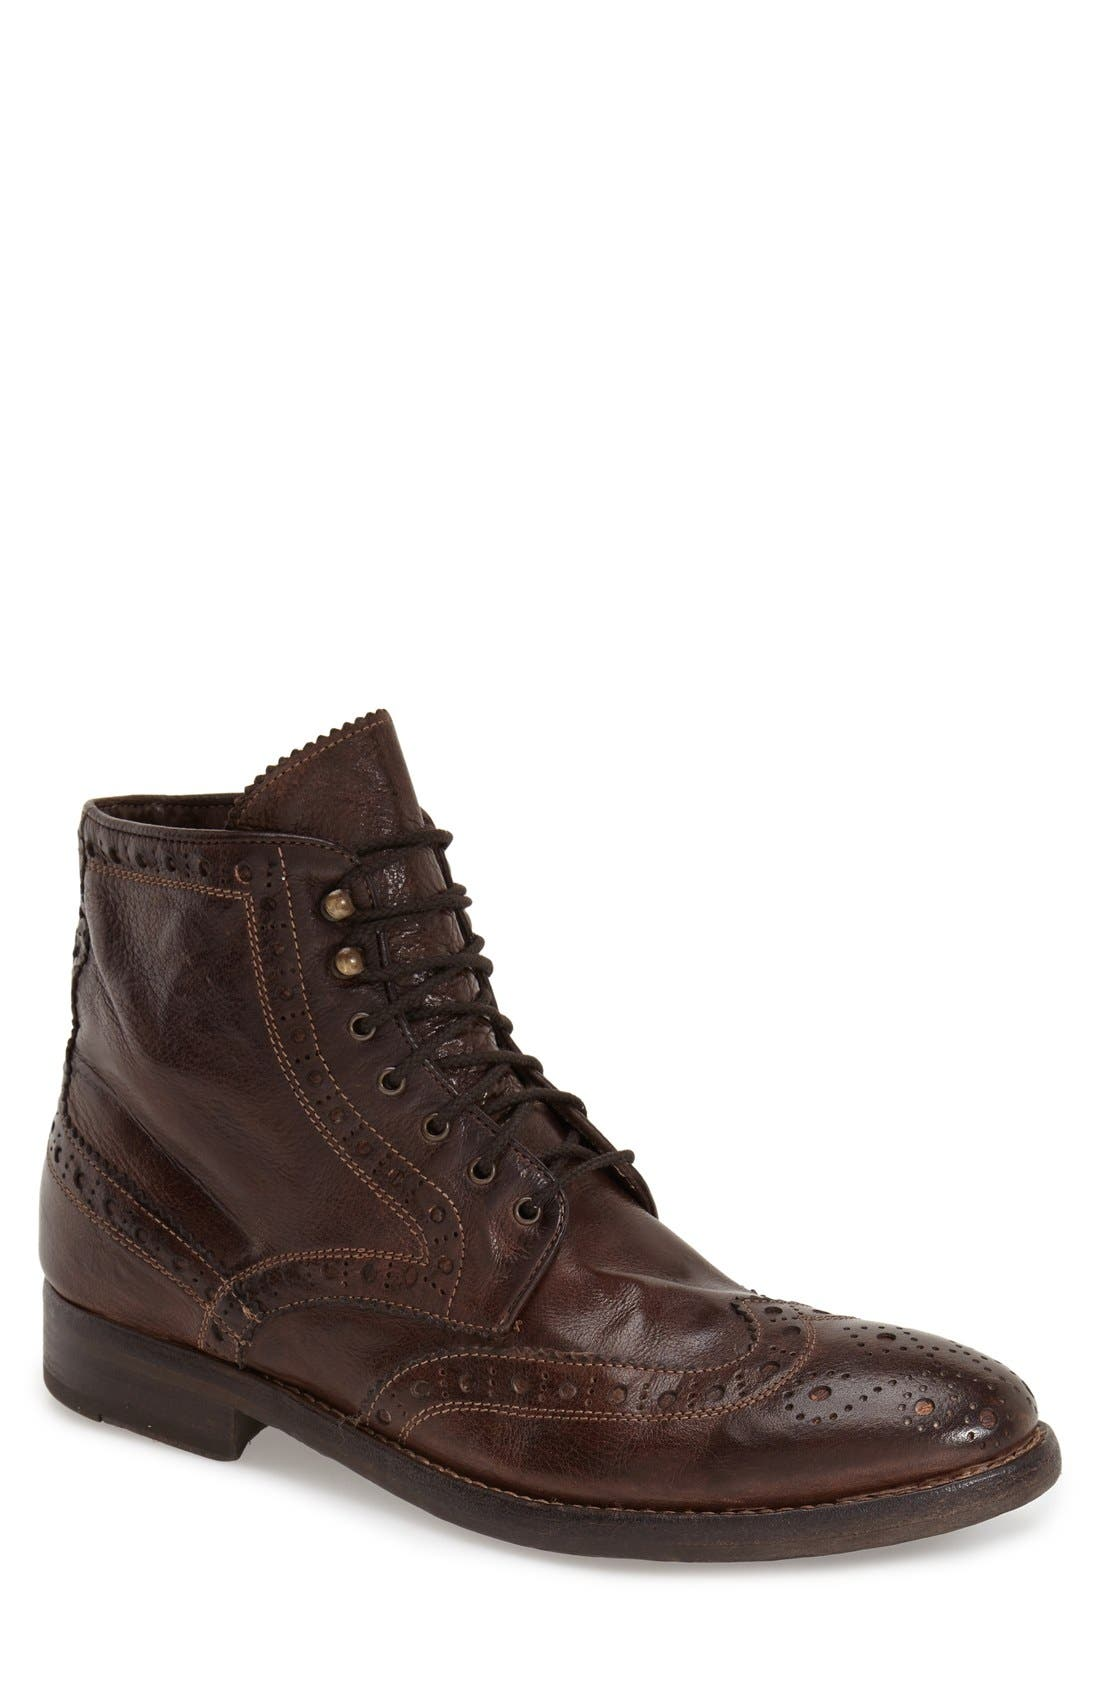 'Brennan' Boot,                             Main thumbnail 1, color,                             Chocolate Leather